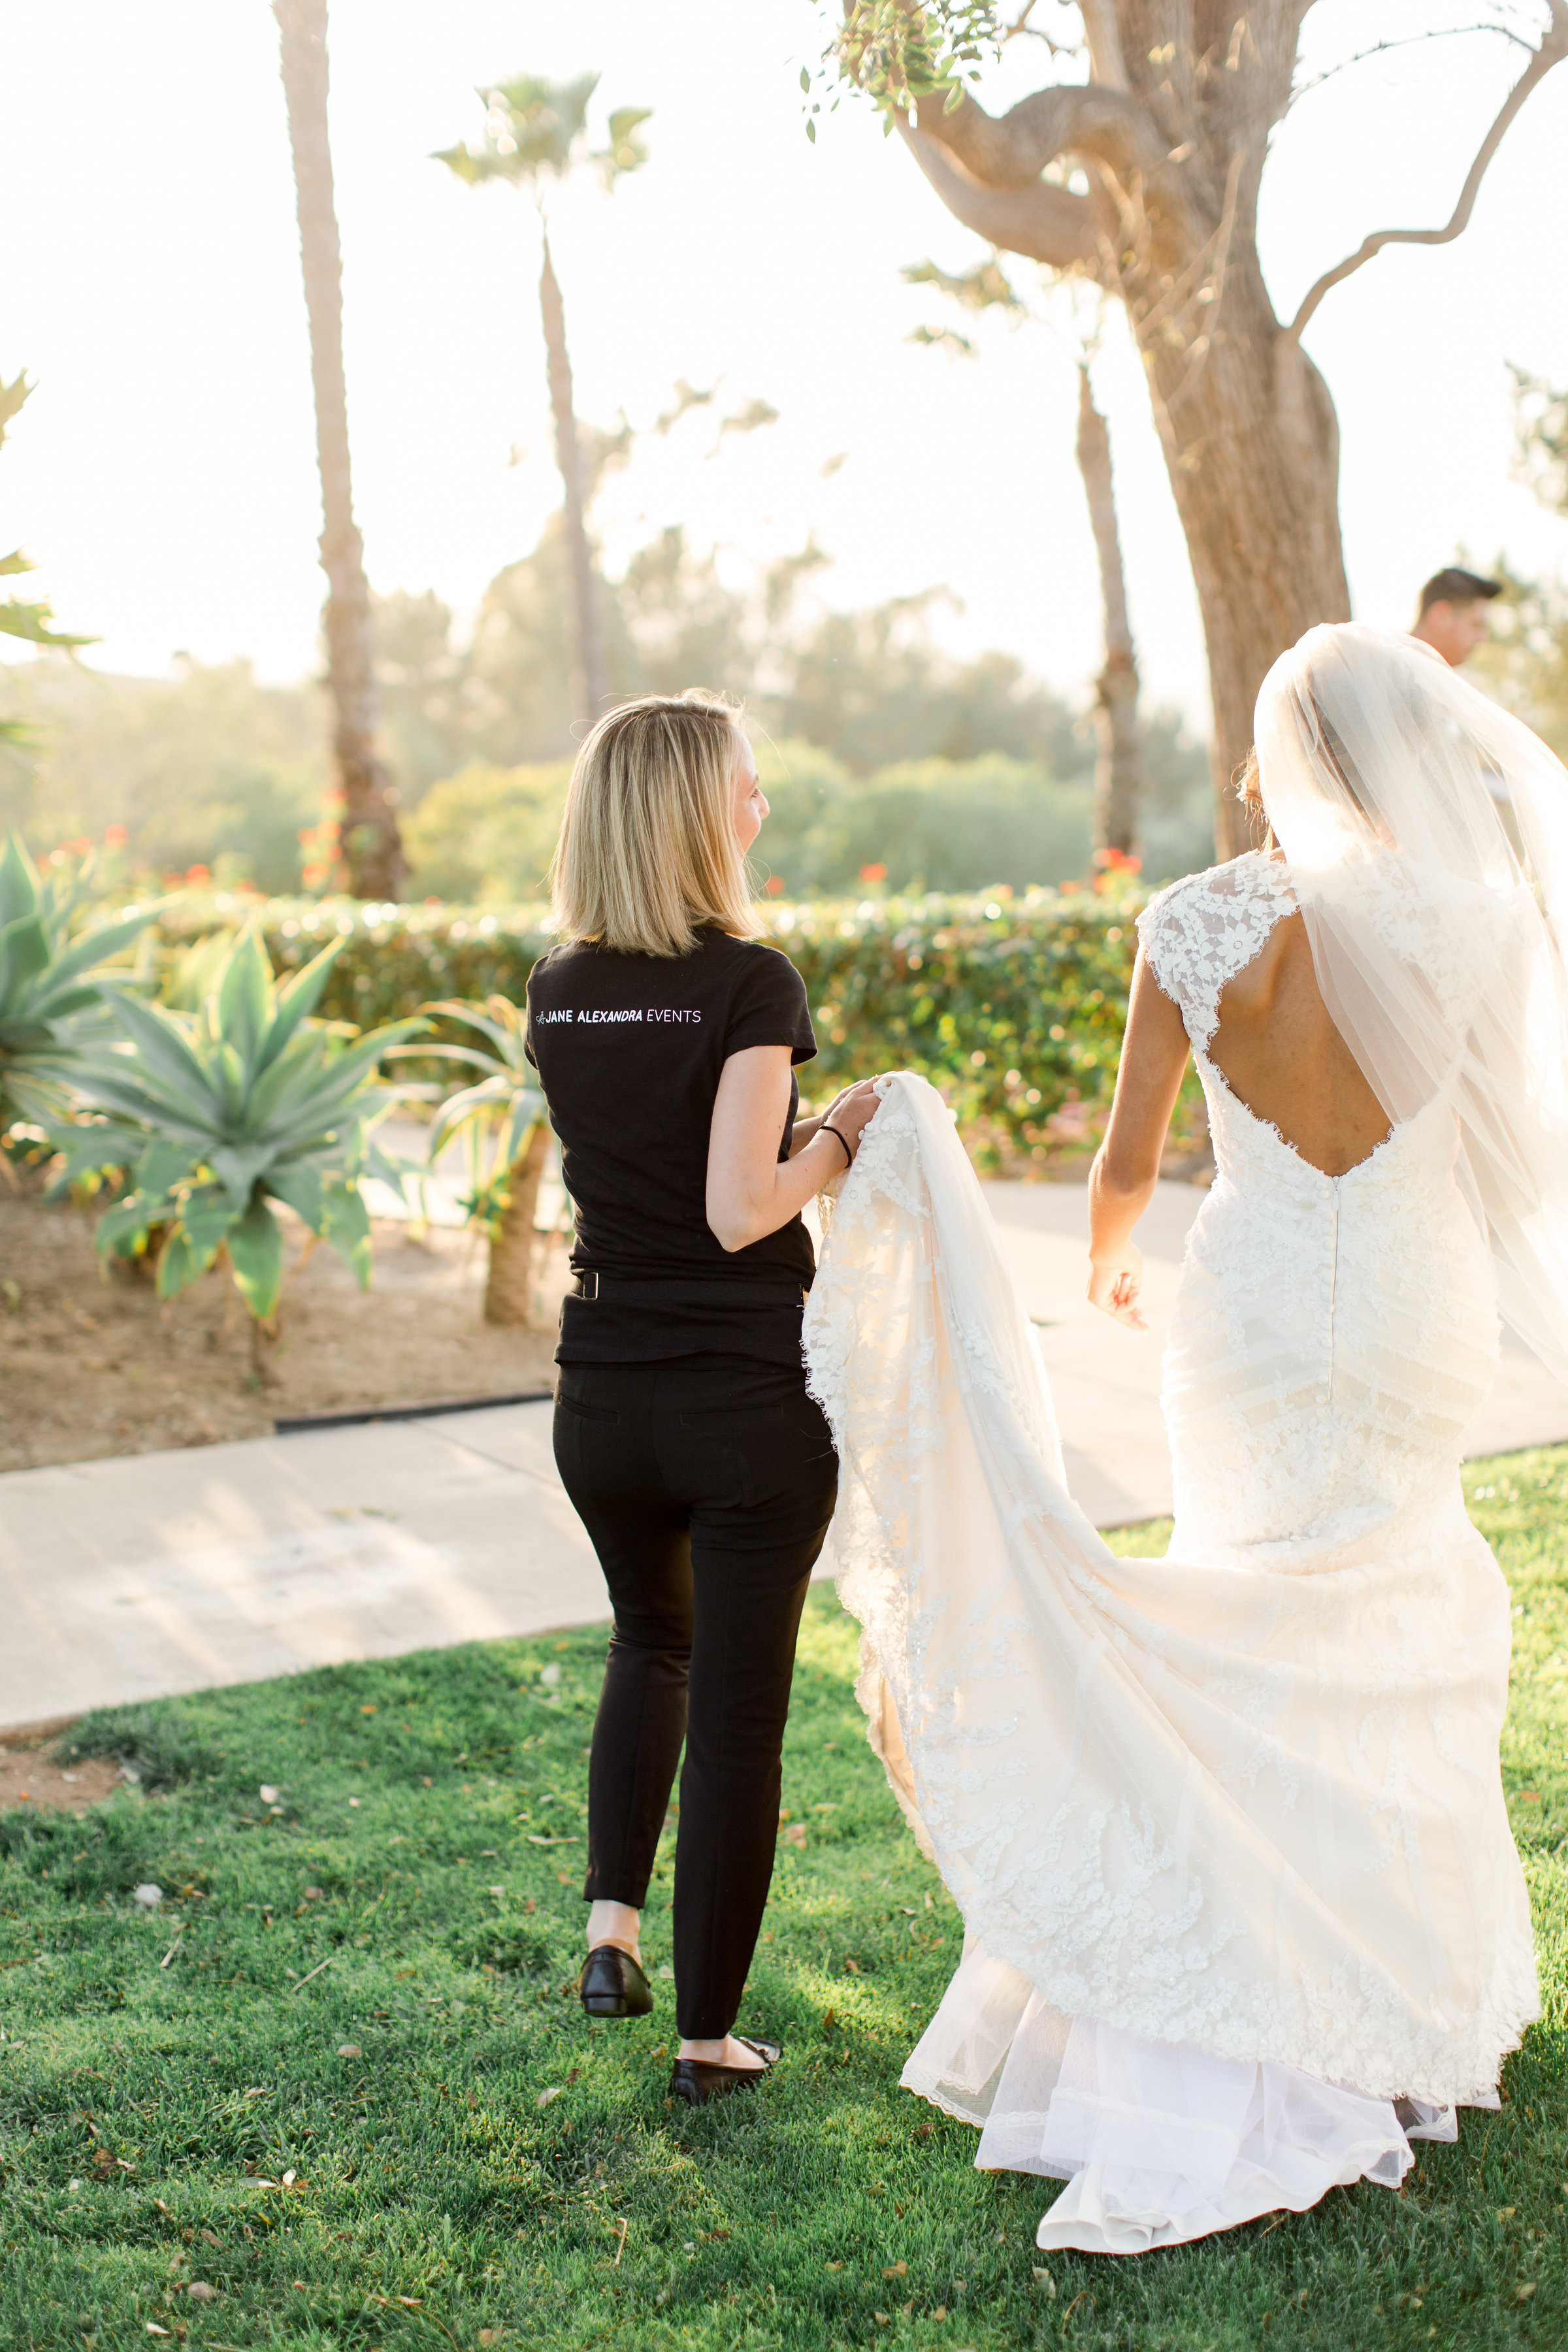 AngelicaMariePhotography_AlvarezWedding_SpanishHillsCountryClub_VenturaCountyWeddingPhotographer_707.JPG